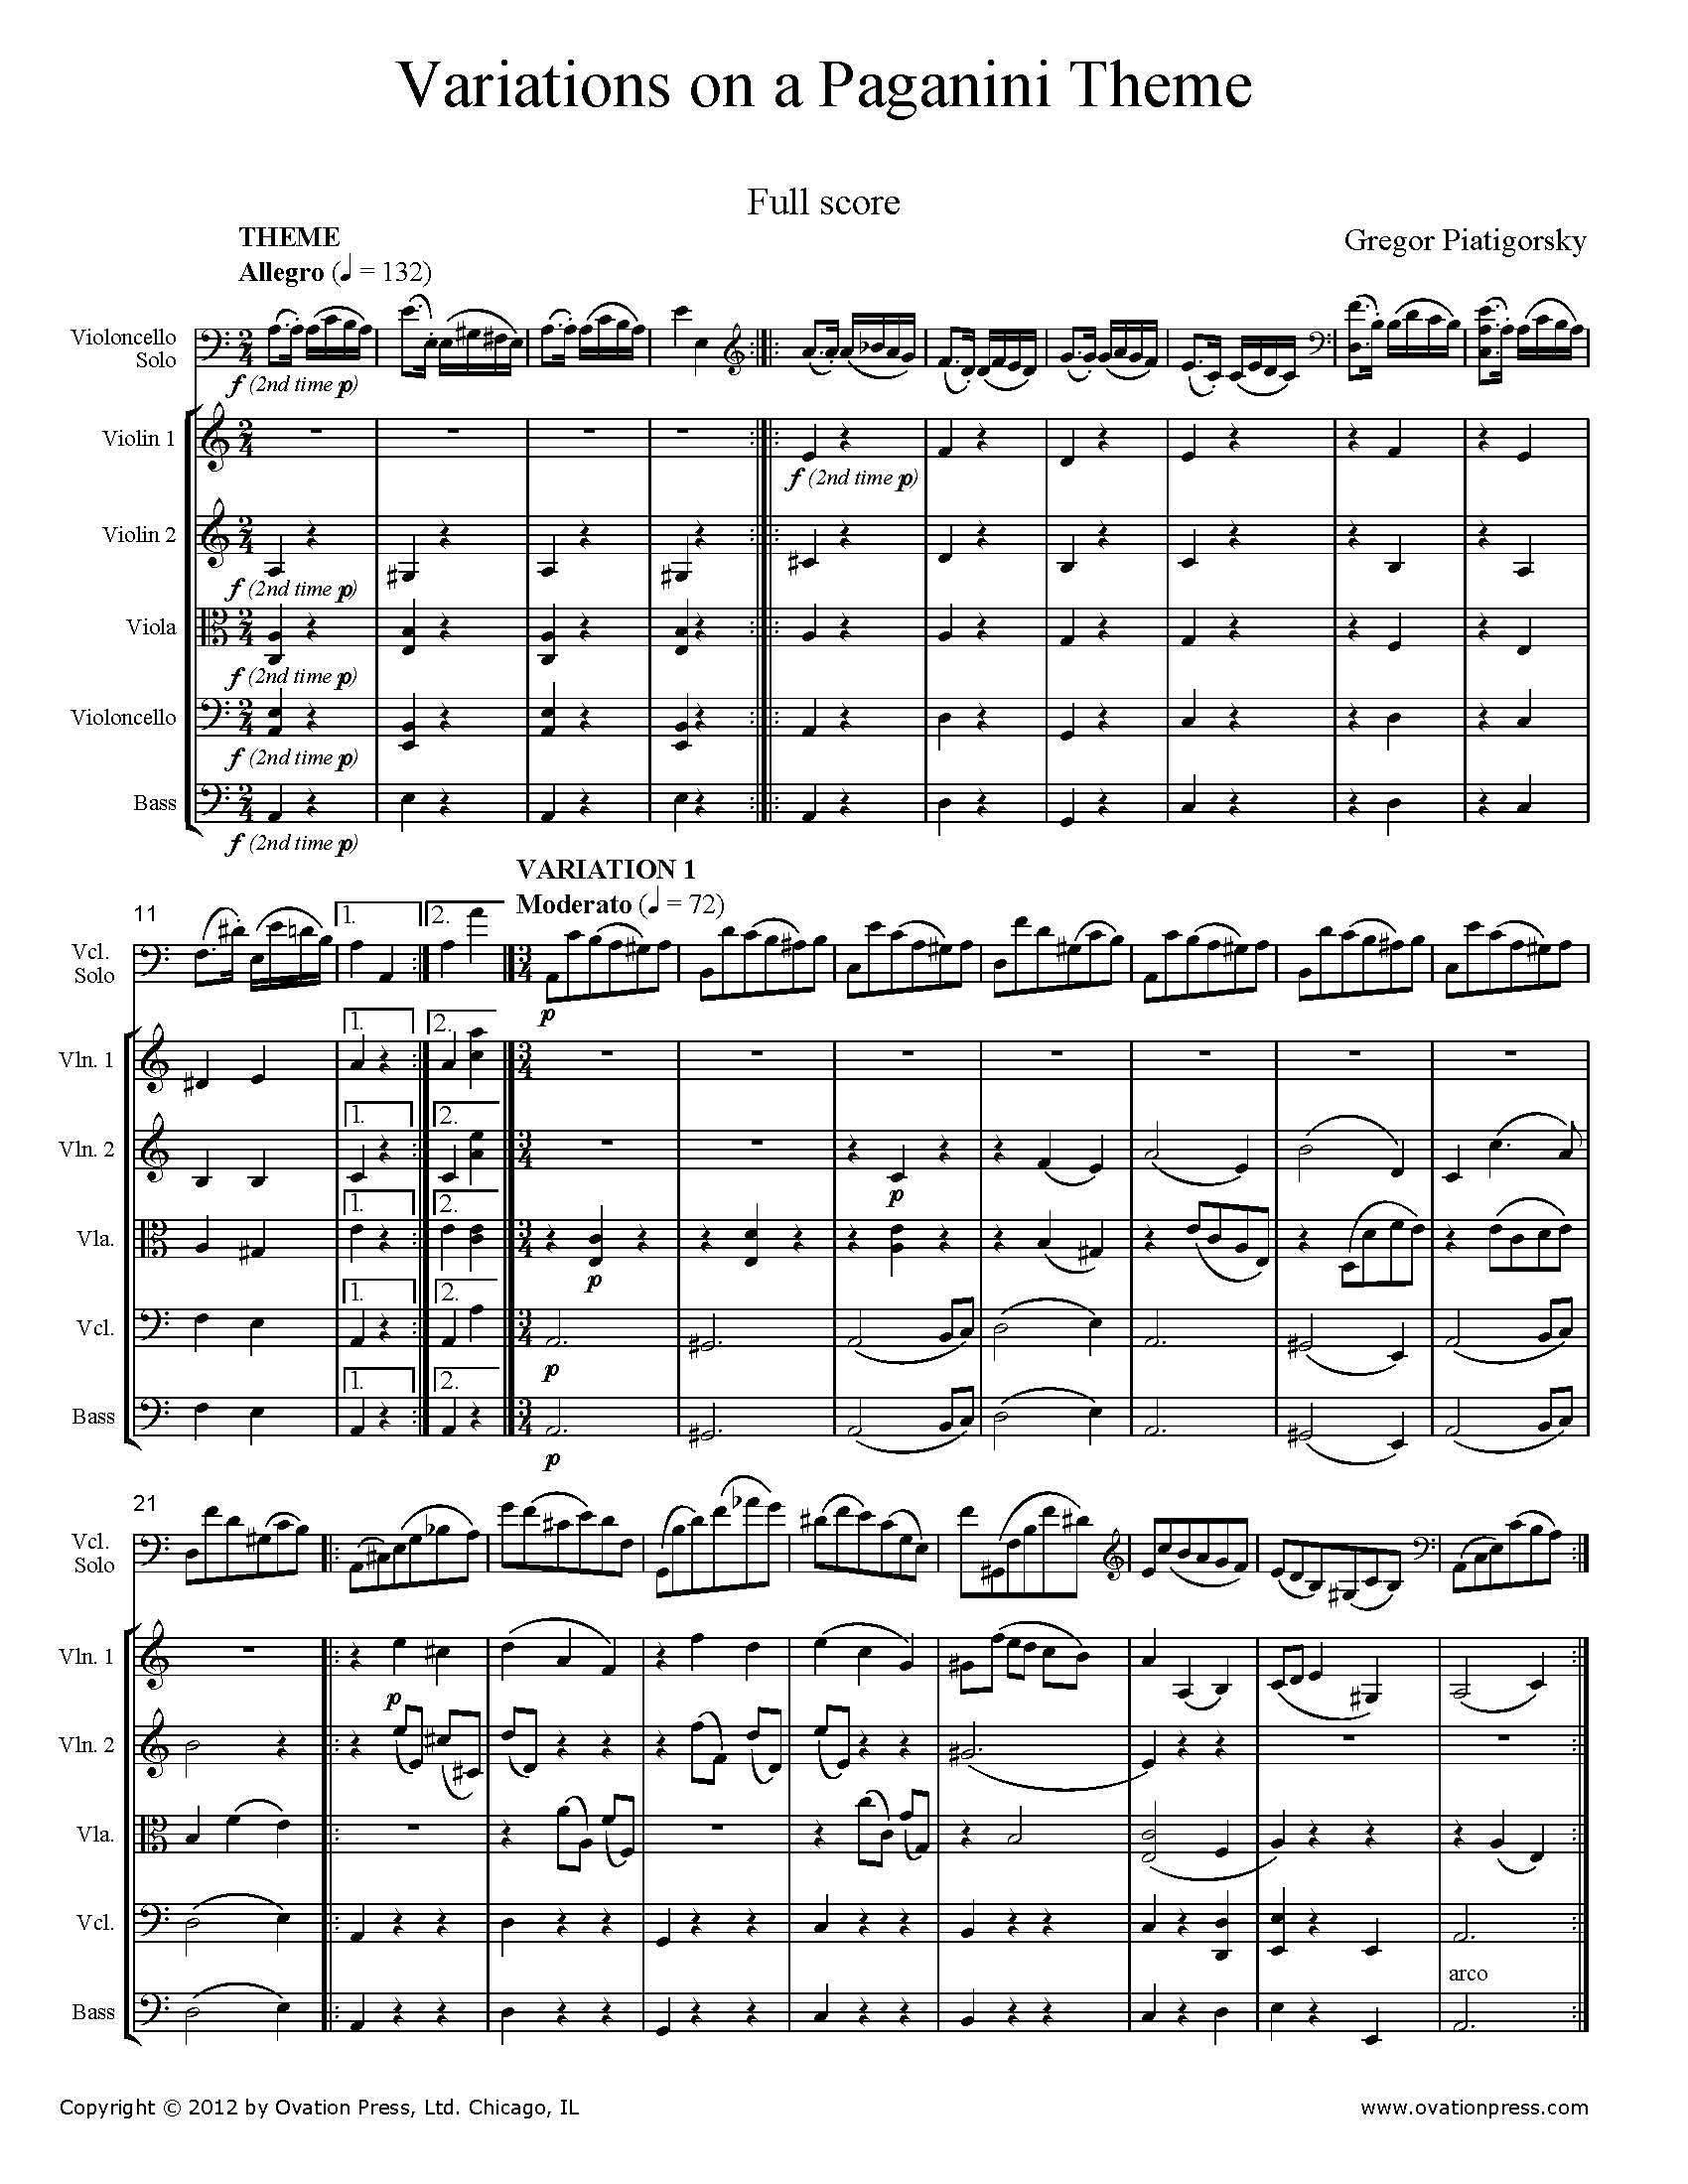 Piatigorsky Variations on a Paganini Theme arr. for Cello and String Orchestra